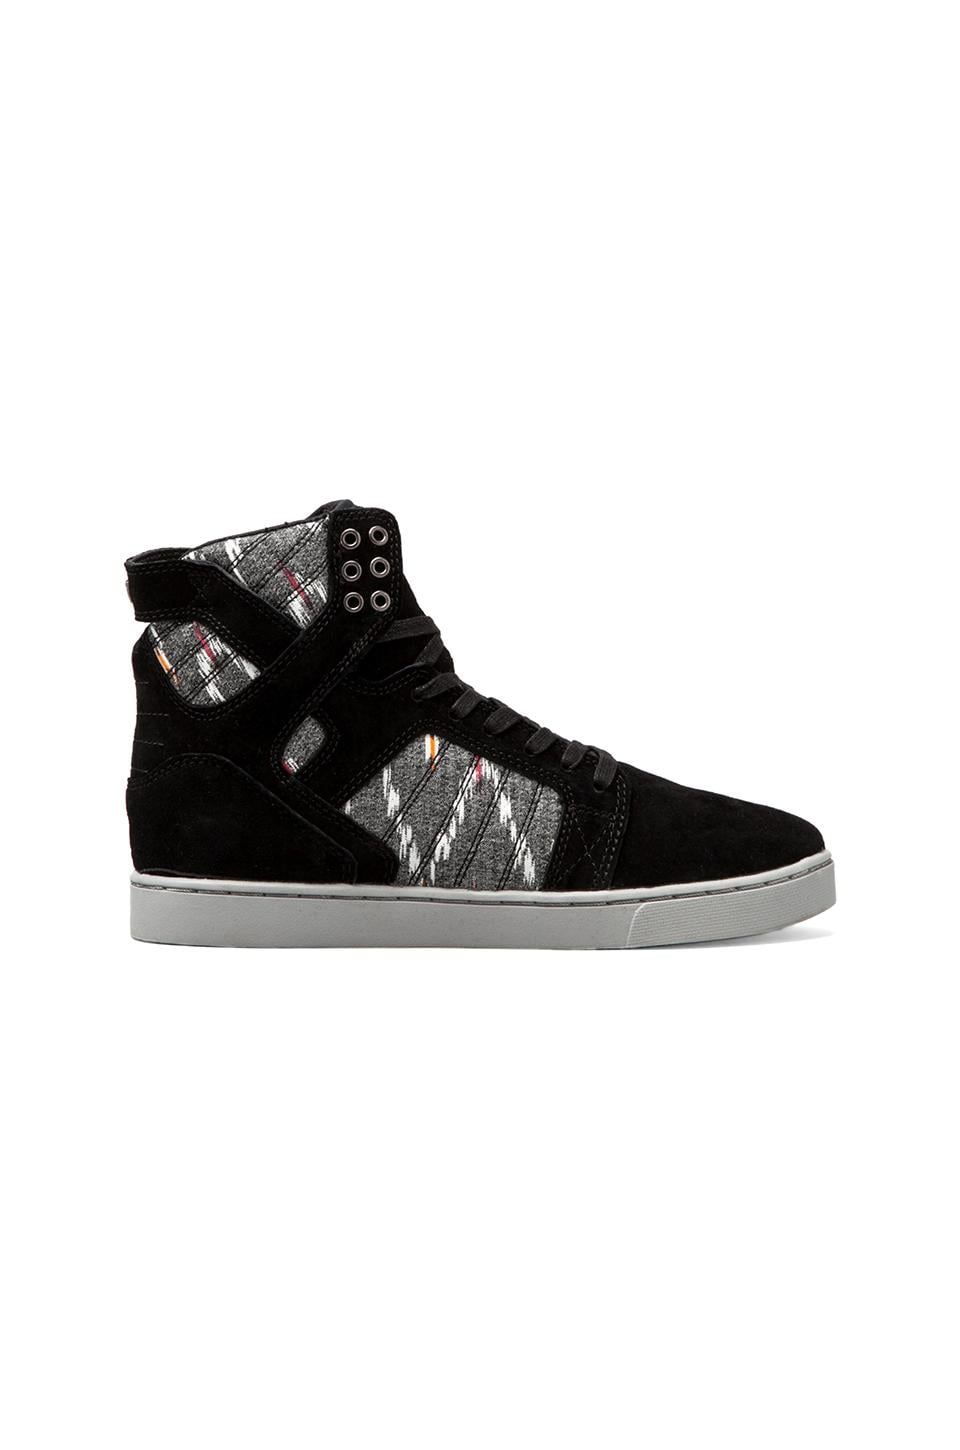 Supra Skytop LX in Black/Grey Print